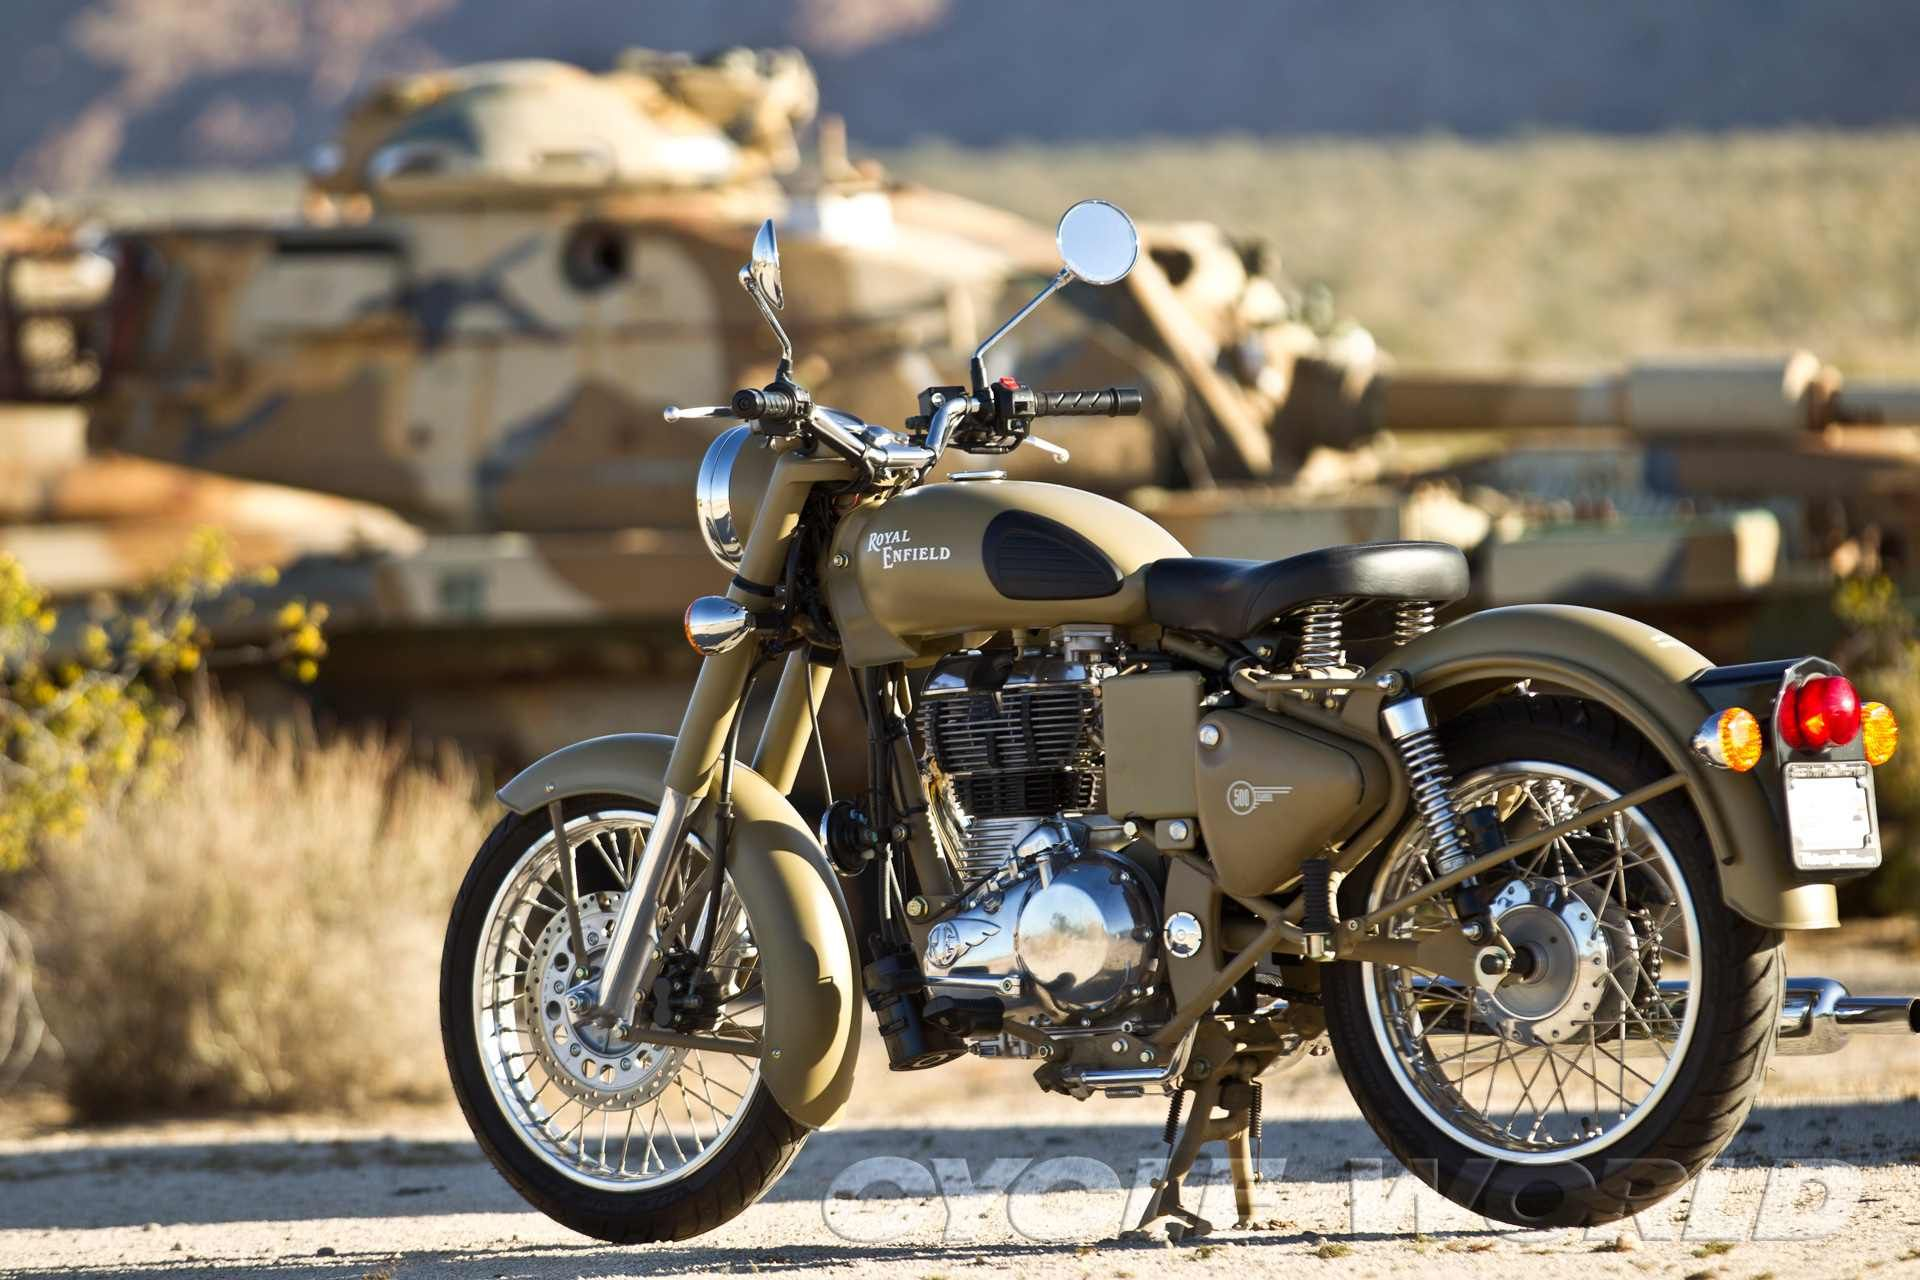 Bullet Bike Wallpaper Hd Collection Of Royal Enfiled Bullet Enfield Classic Royal Enfield Bullet Classic 350 Royal Enfield